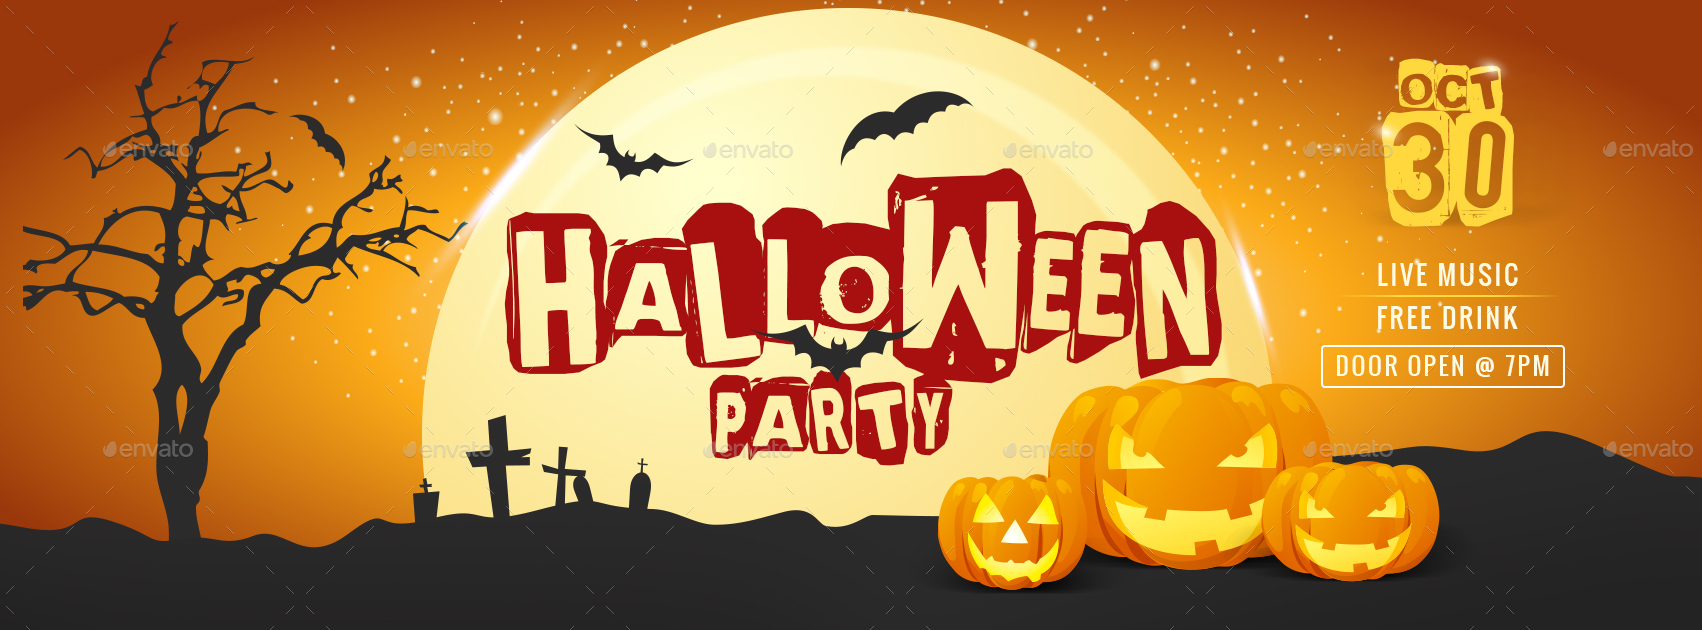 halloween party facebook coverhyov | graphicriver